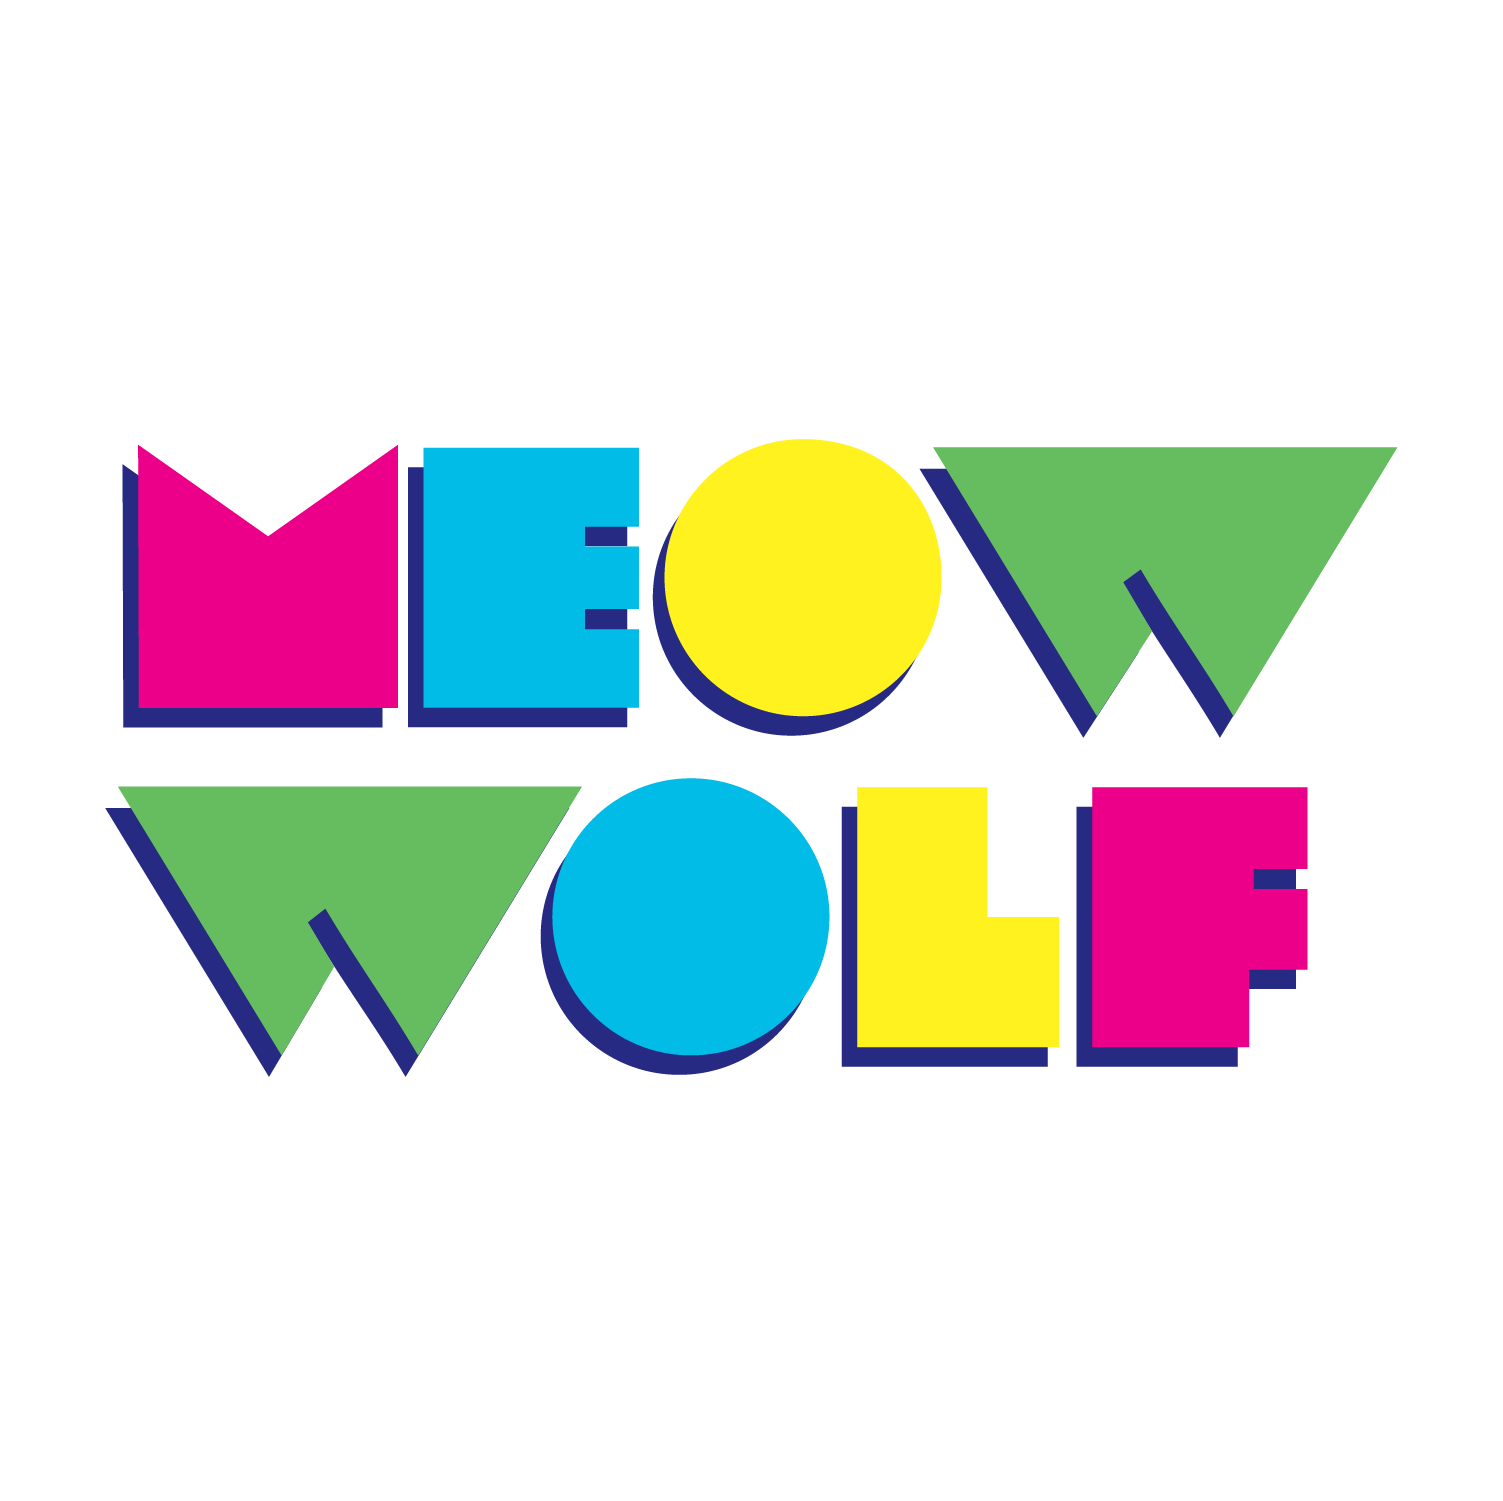 meow-wolf-color-on-white-square-shadow.png